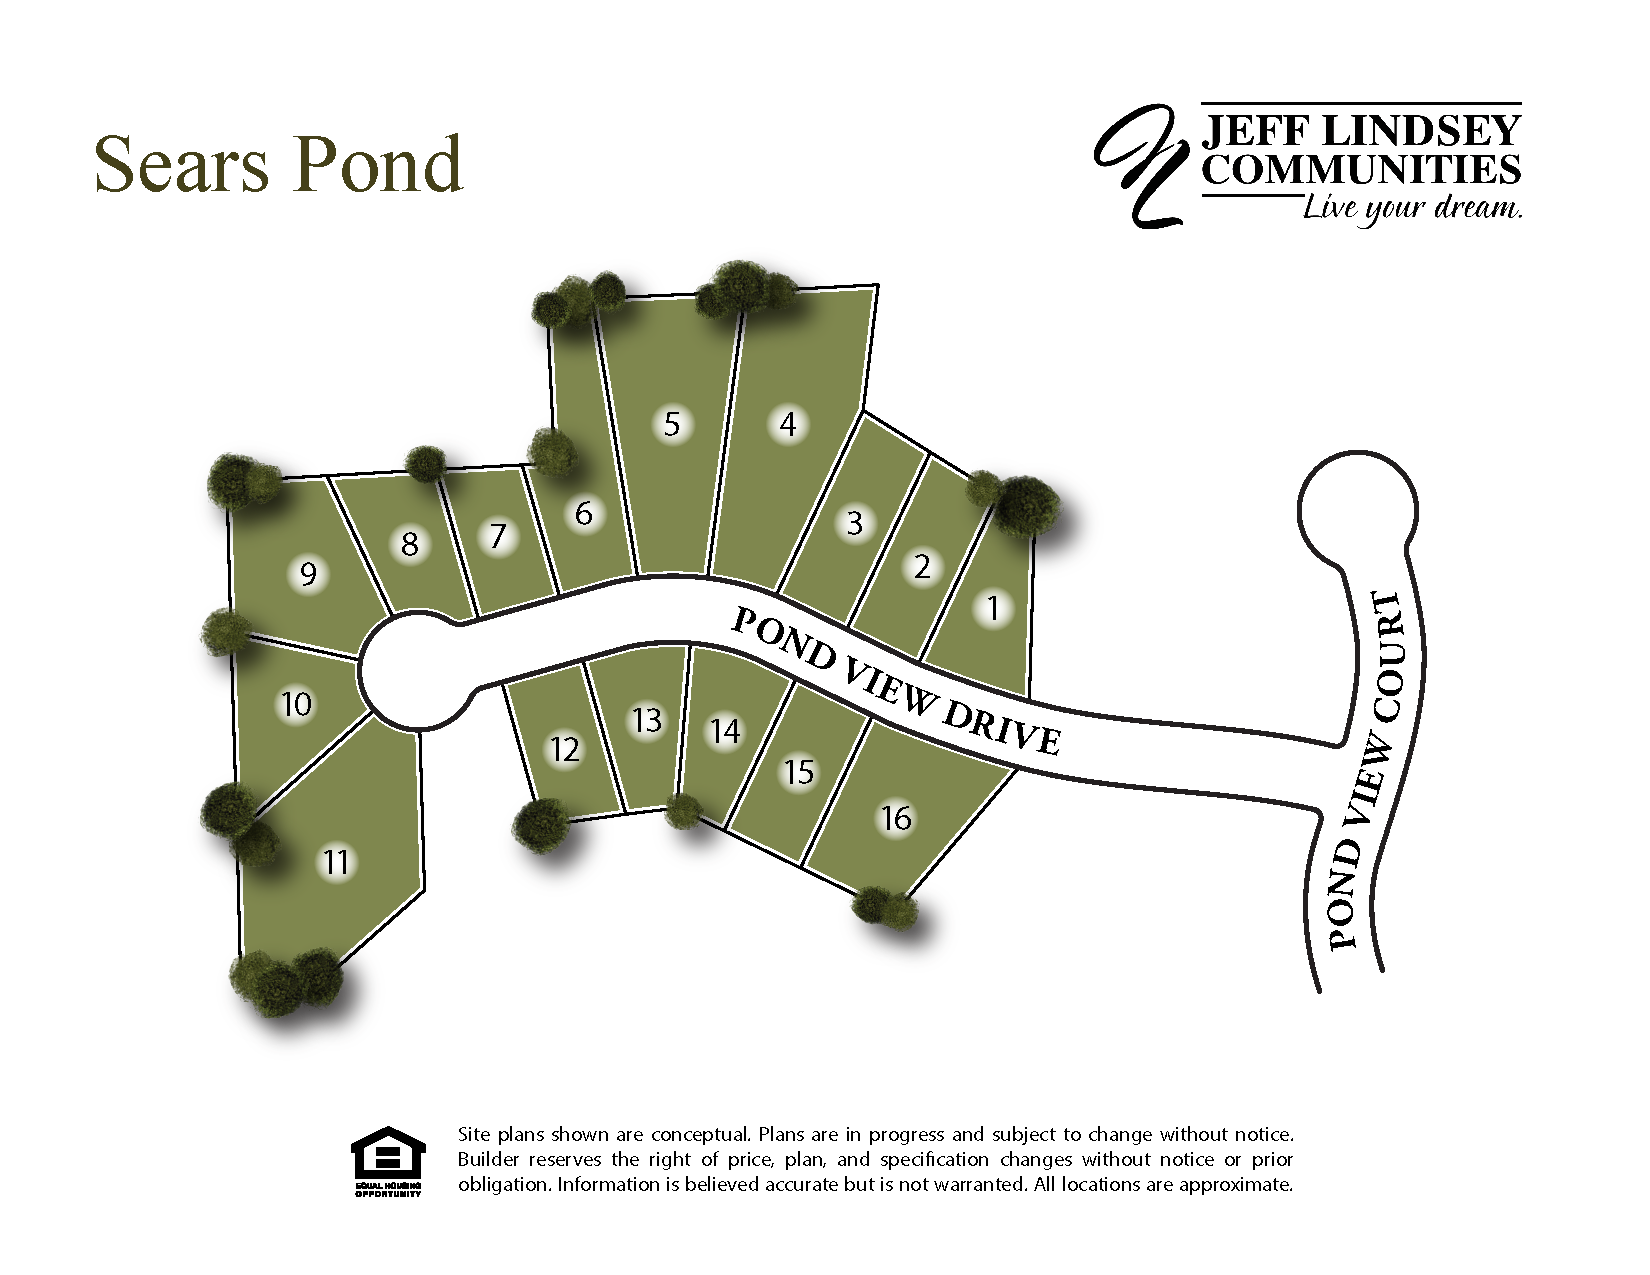 Sears Pond Site Map